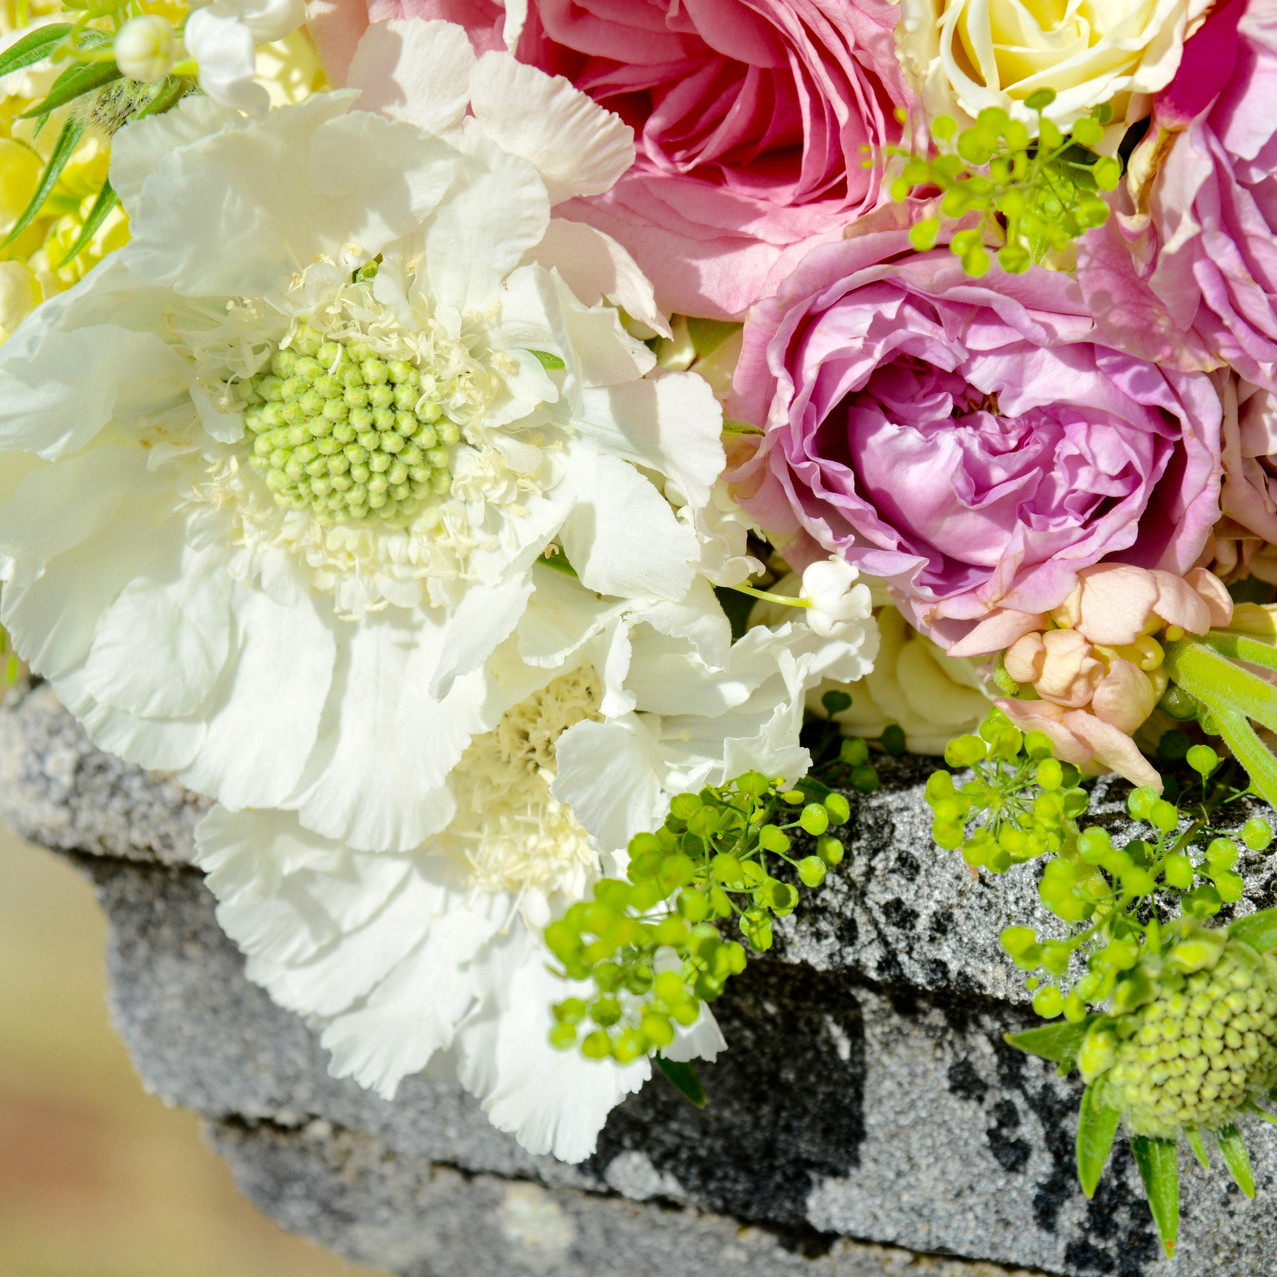 Deliciously scented bridal bouquet of pink, peach and ivory flowers, including Lily of the Valley, stocks, roses, freesias, scabious, thylaspi, oregano. Blue Geranium Florist Totnes Devon